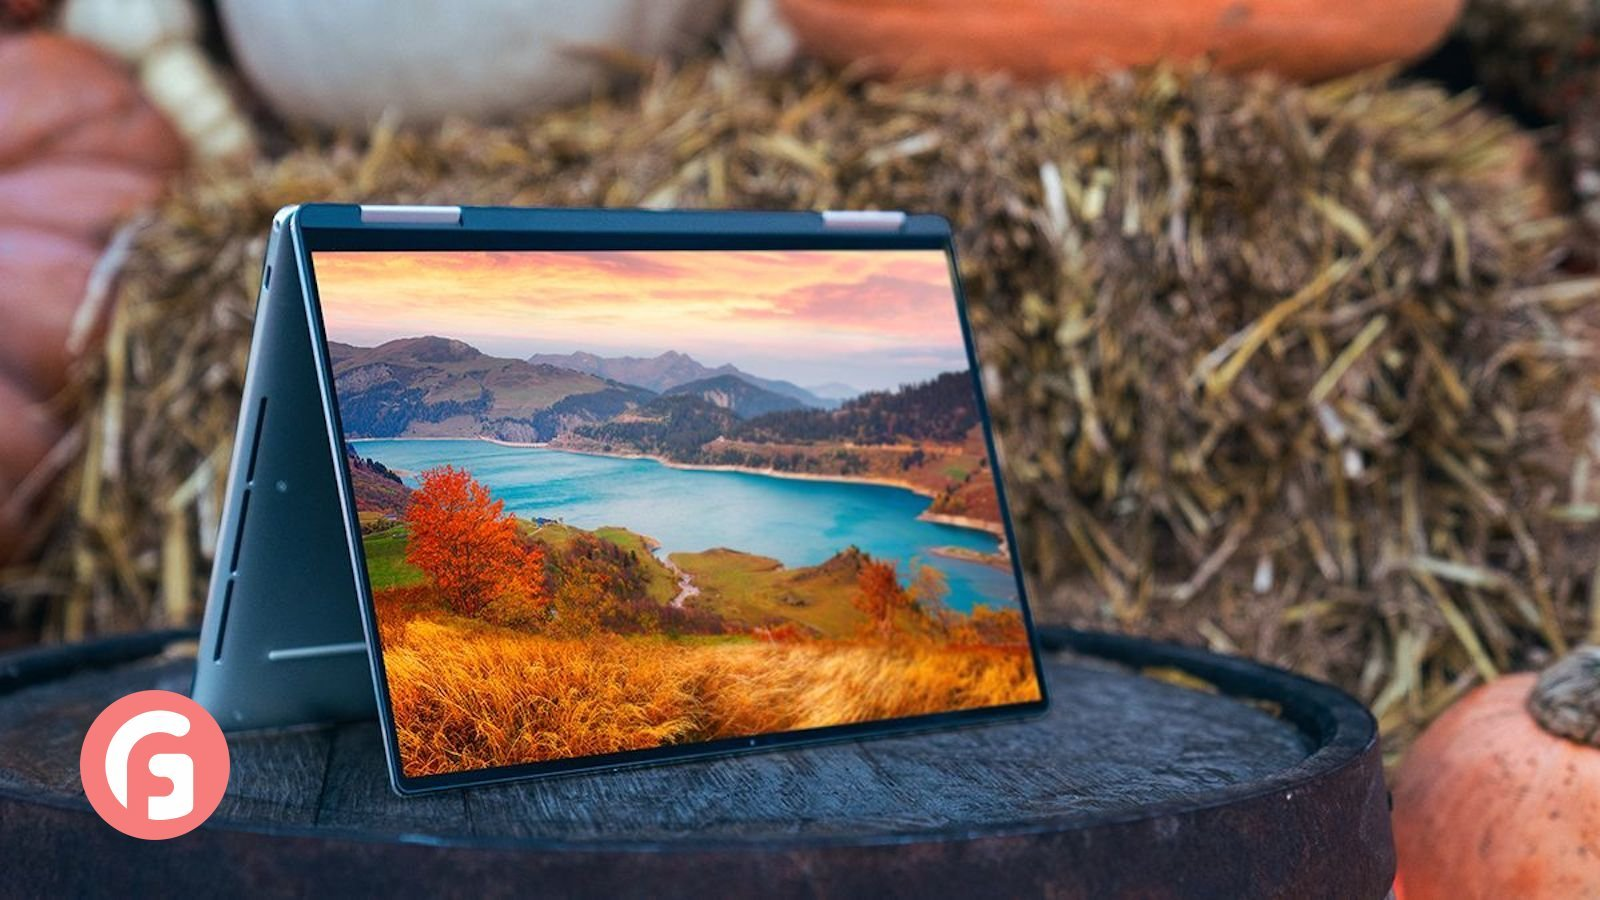 Dell New XPS 13 2-in-1 Laptop 2020 edition uses the 11th-Gen Intel Tiger Lake processor